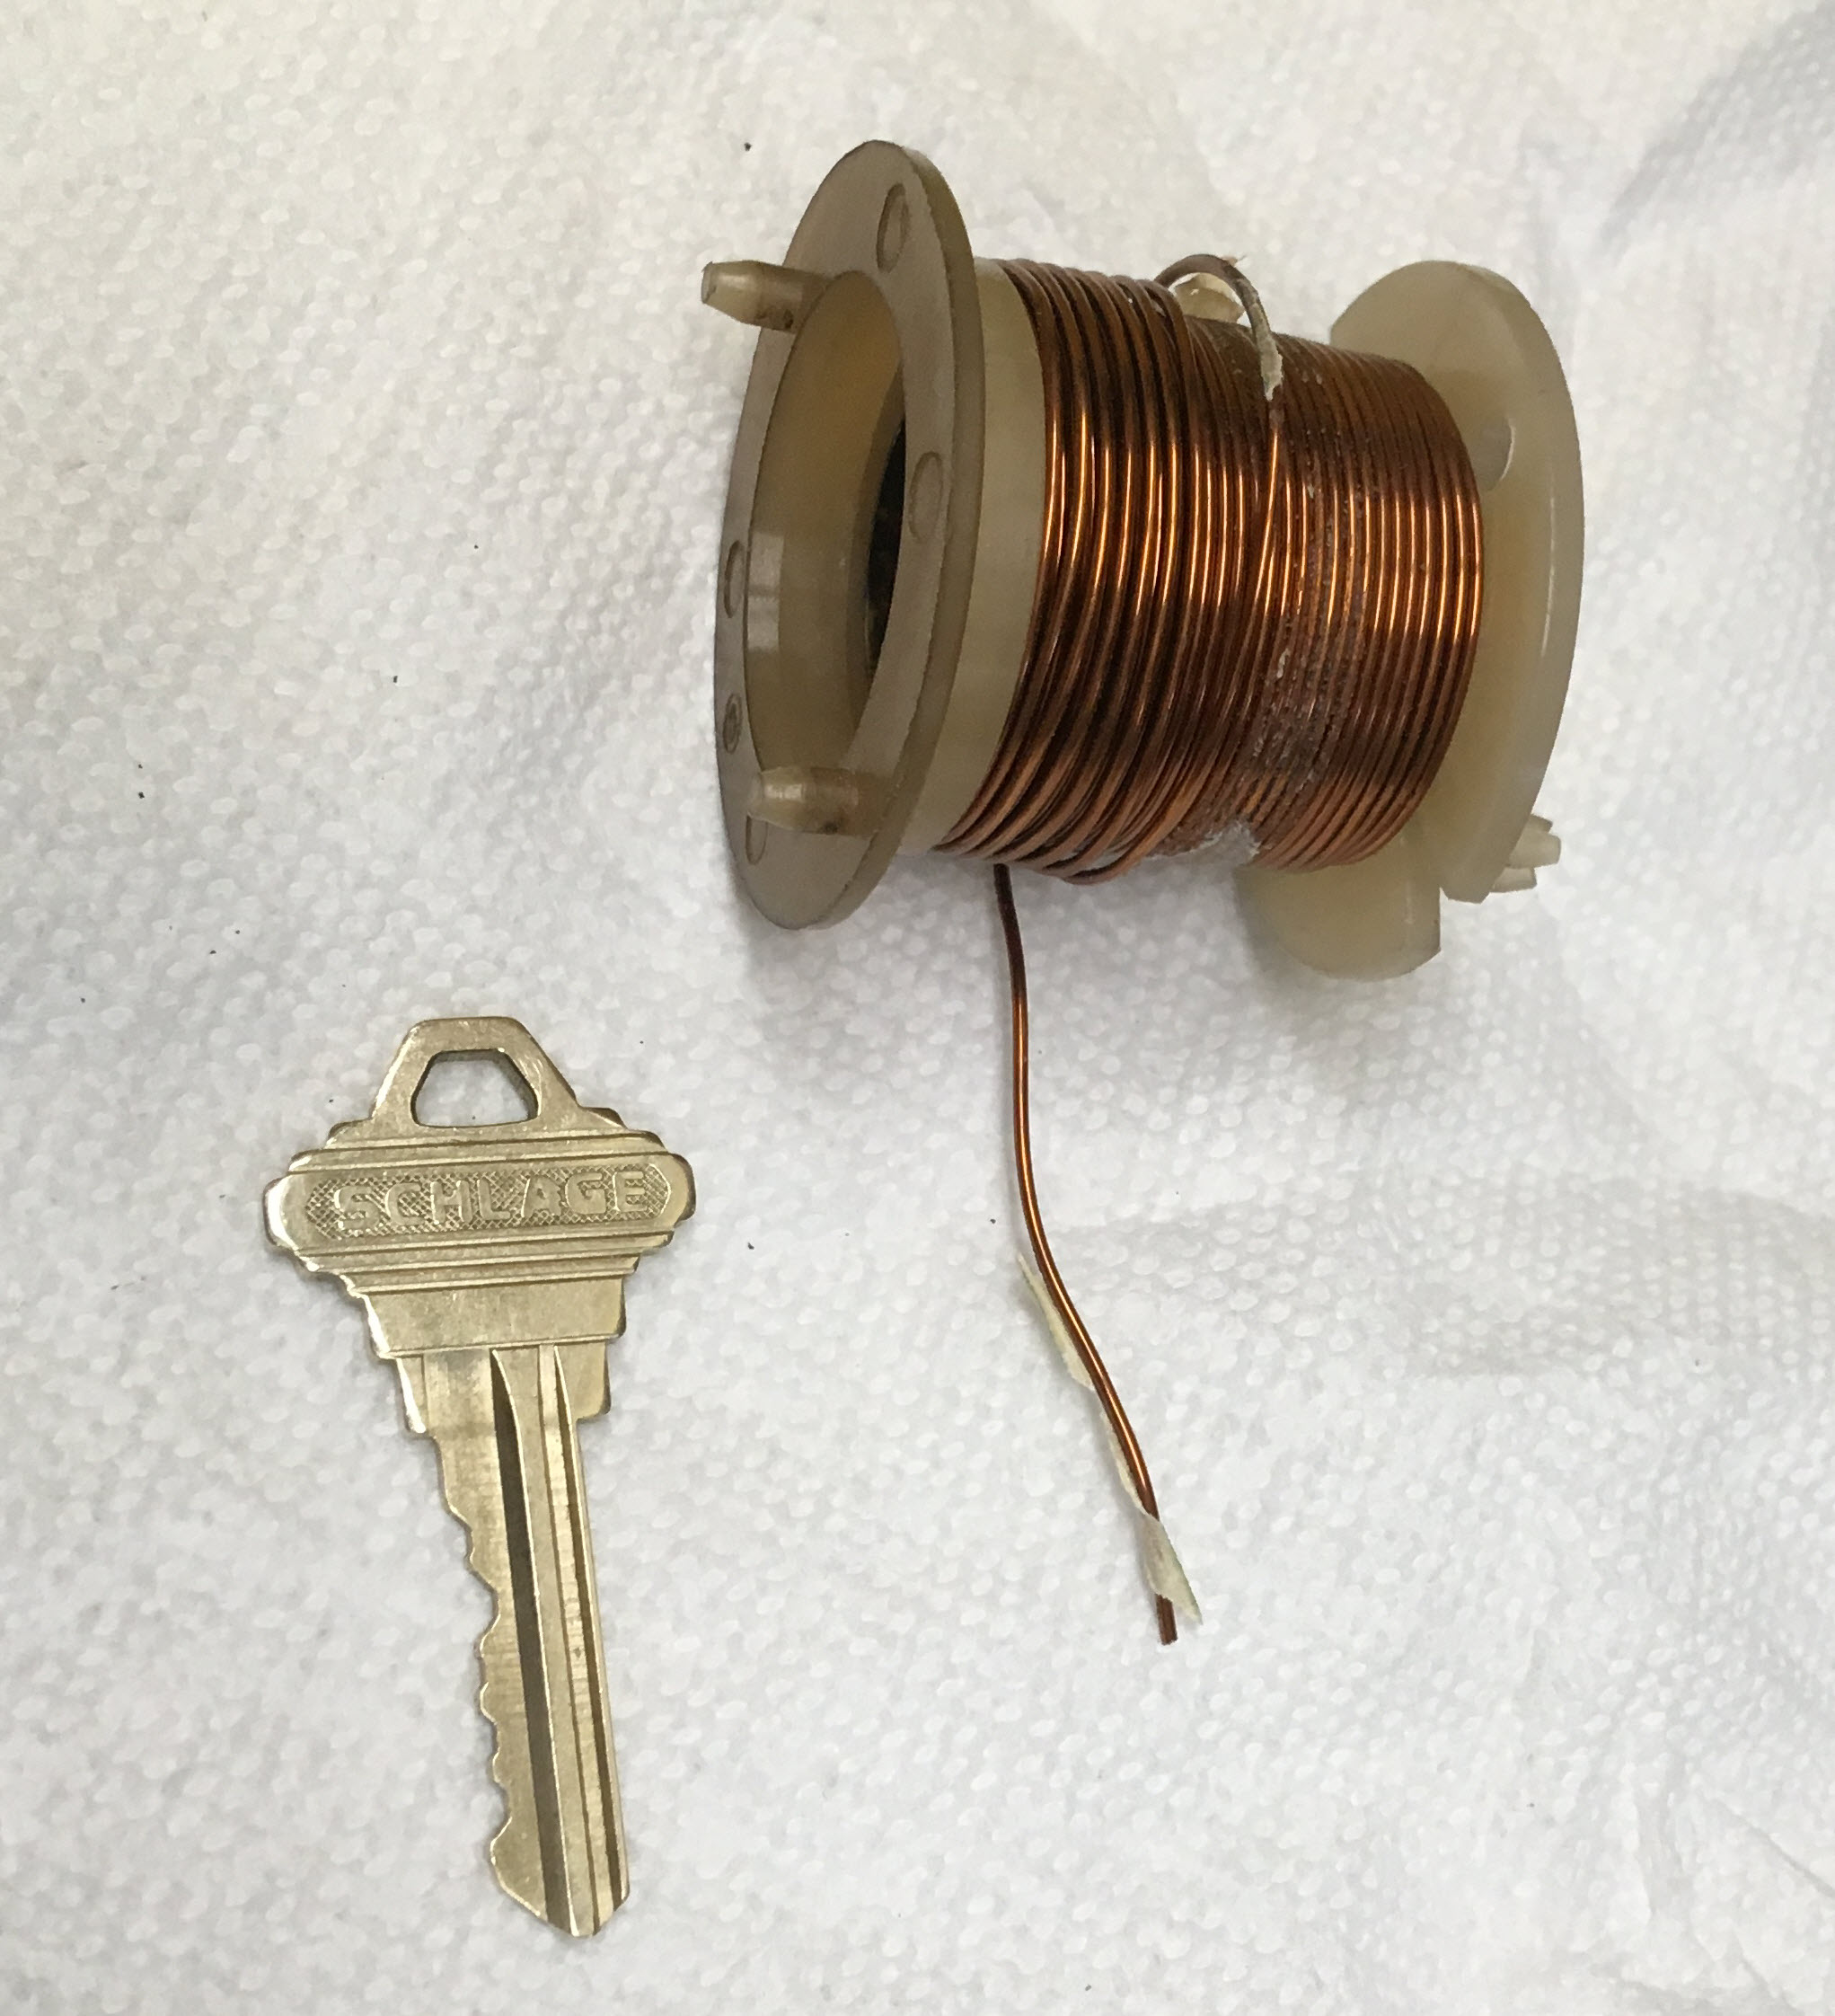 Spool of copper wire (Nissan LD28 solenoid).